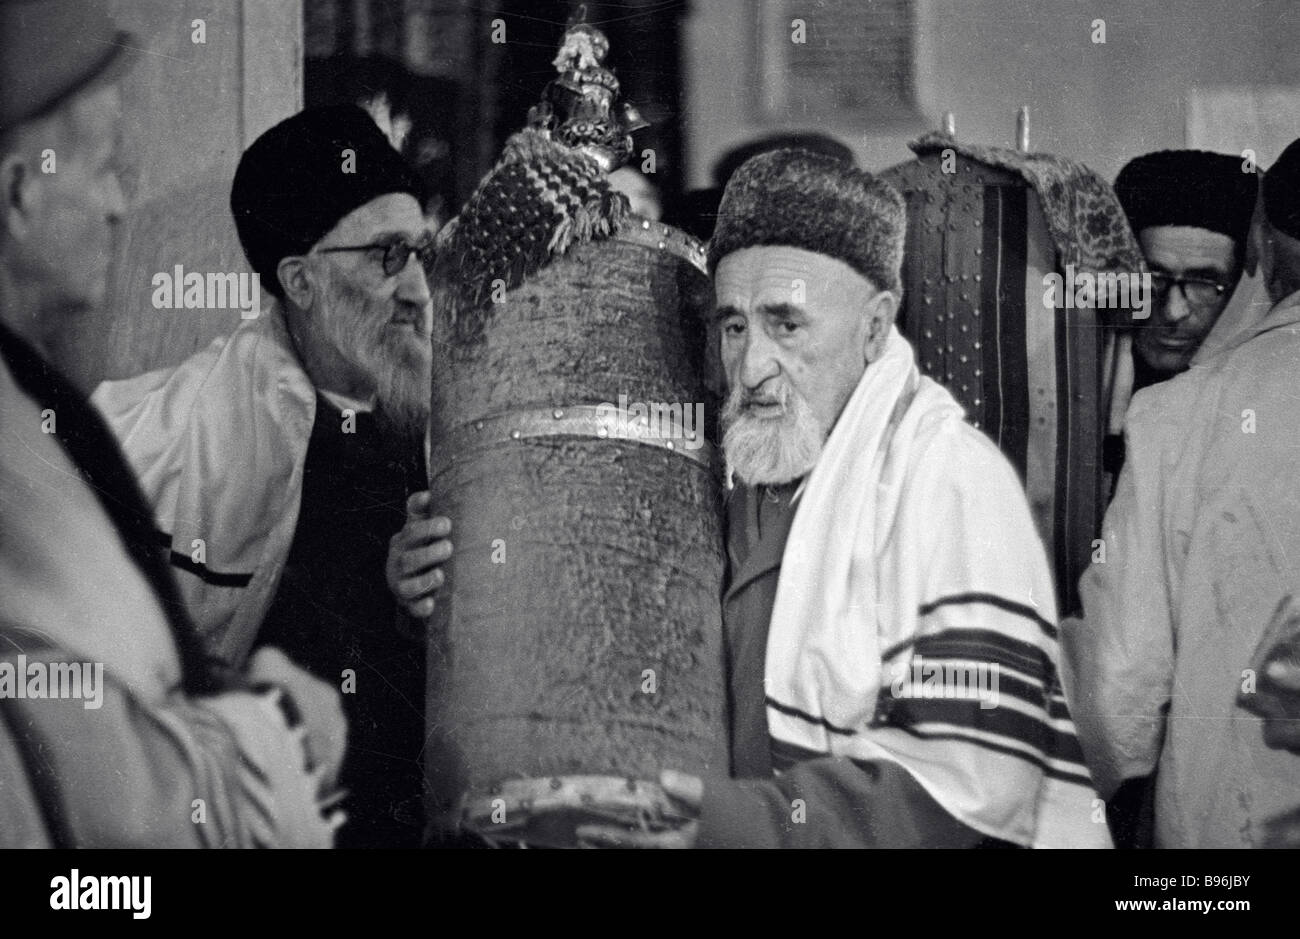 Believers with Torah scroll at Tashkent Synagogue - Stock Image